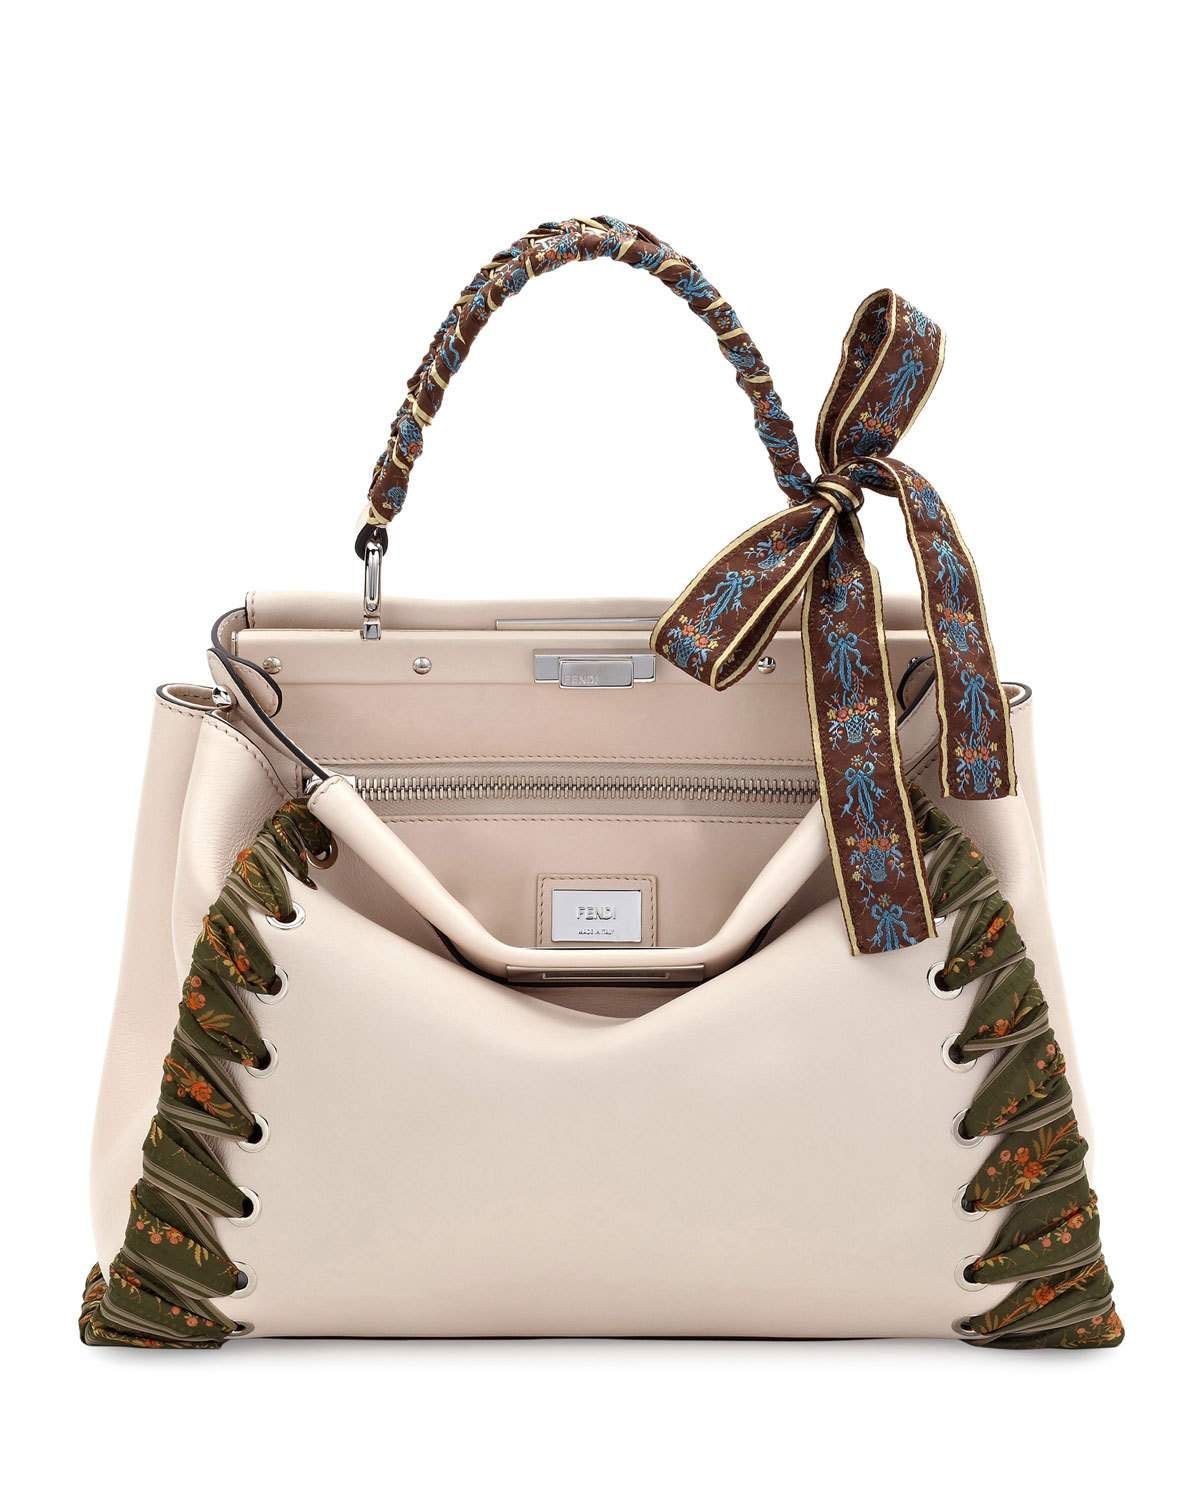 898a2512065 Peekaboo Medium Ribbon Whipstitch Satchel Bag Beige | Bags | Fendi ...